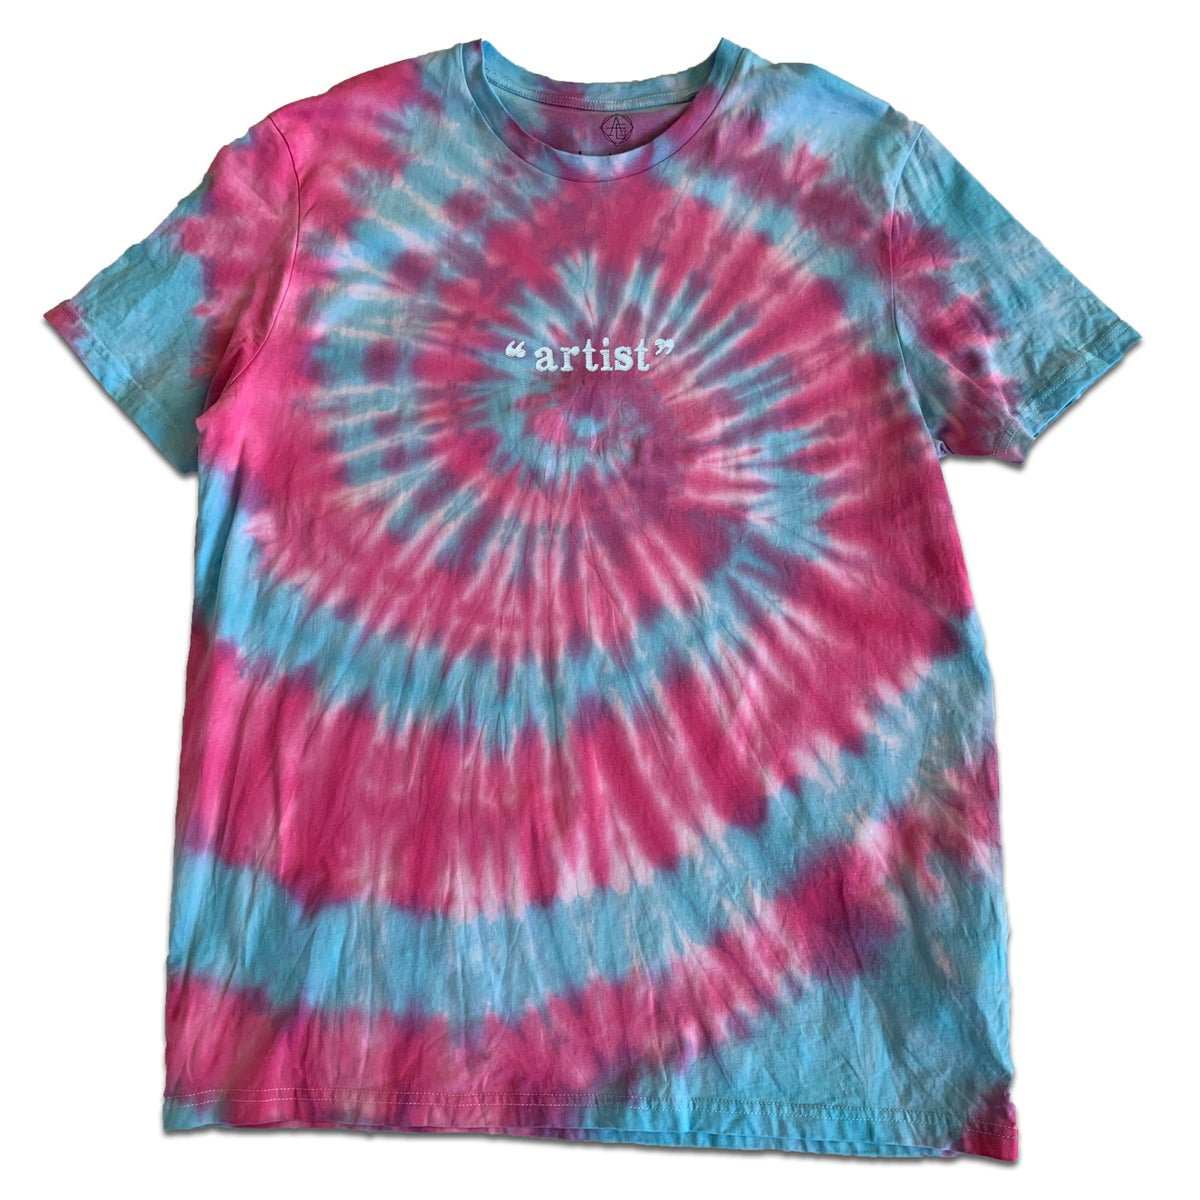 """Image of TIE DIYE """"ARTIST"""" TEE - GLOW IN THE DARK LIGHT BLUE and PINK - Friends & Family"""